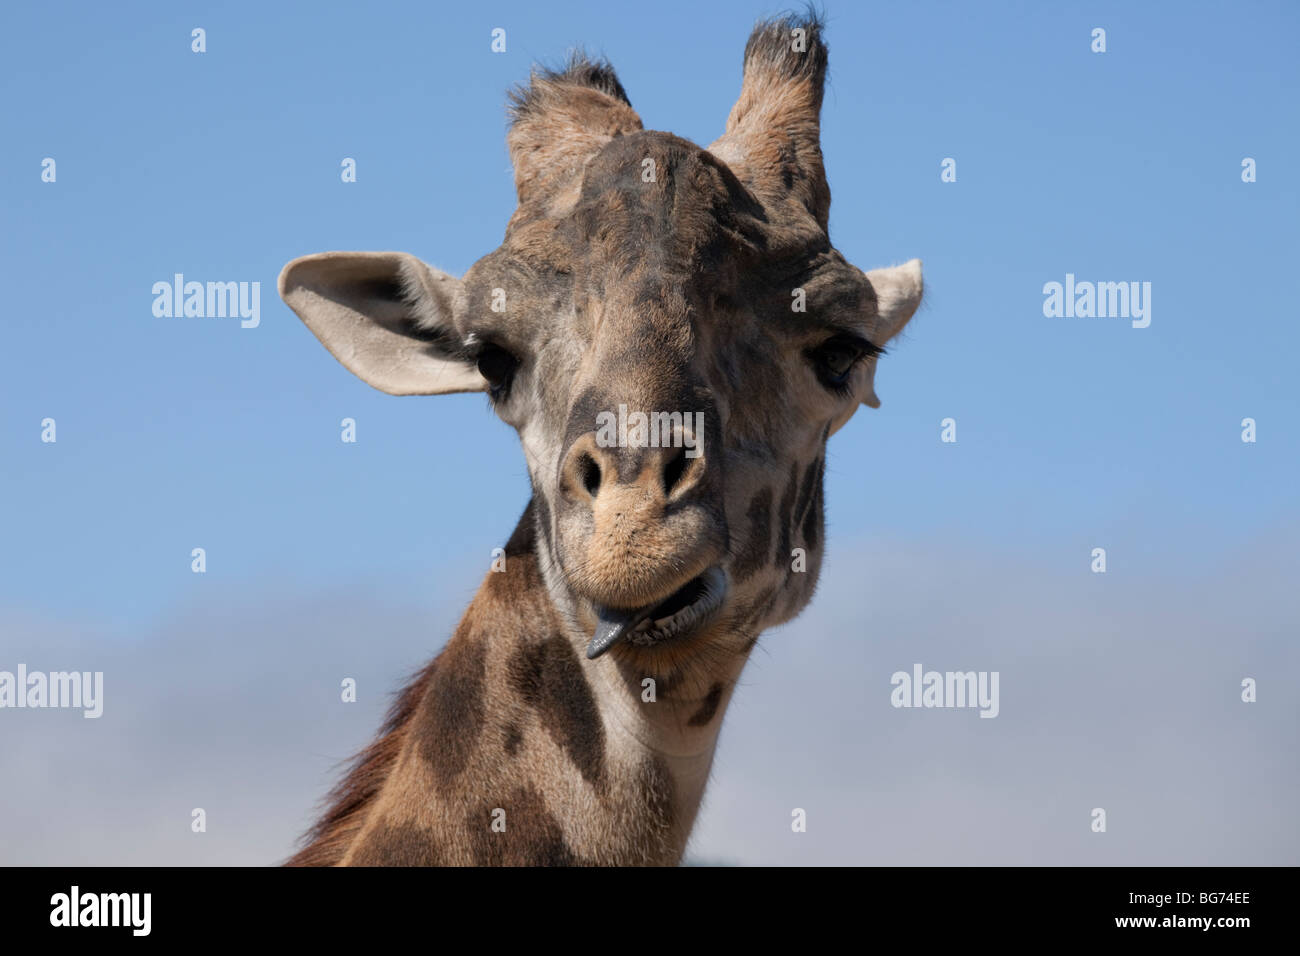 Closeup of giraffe, with its tongue sticking out, at Safari West wildlife preserve in the hills of Santa Rosa, California, - Stock Image